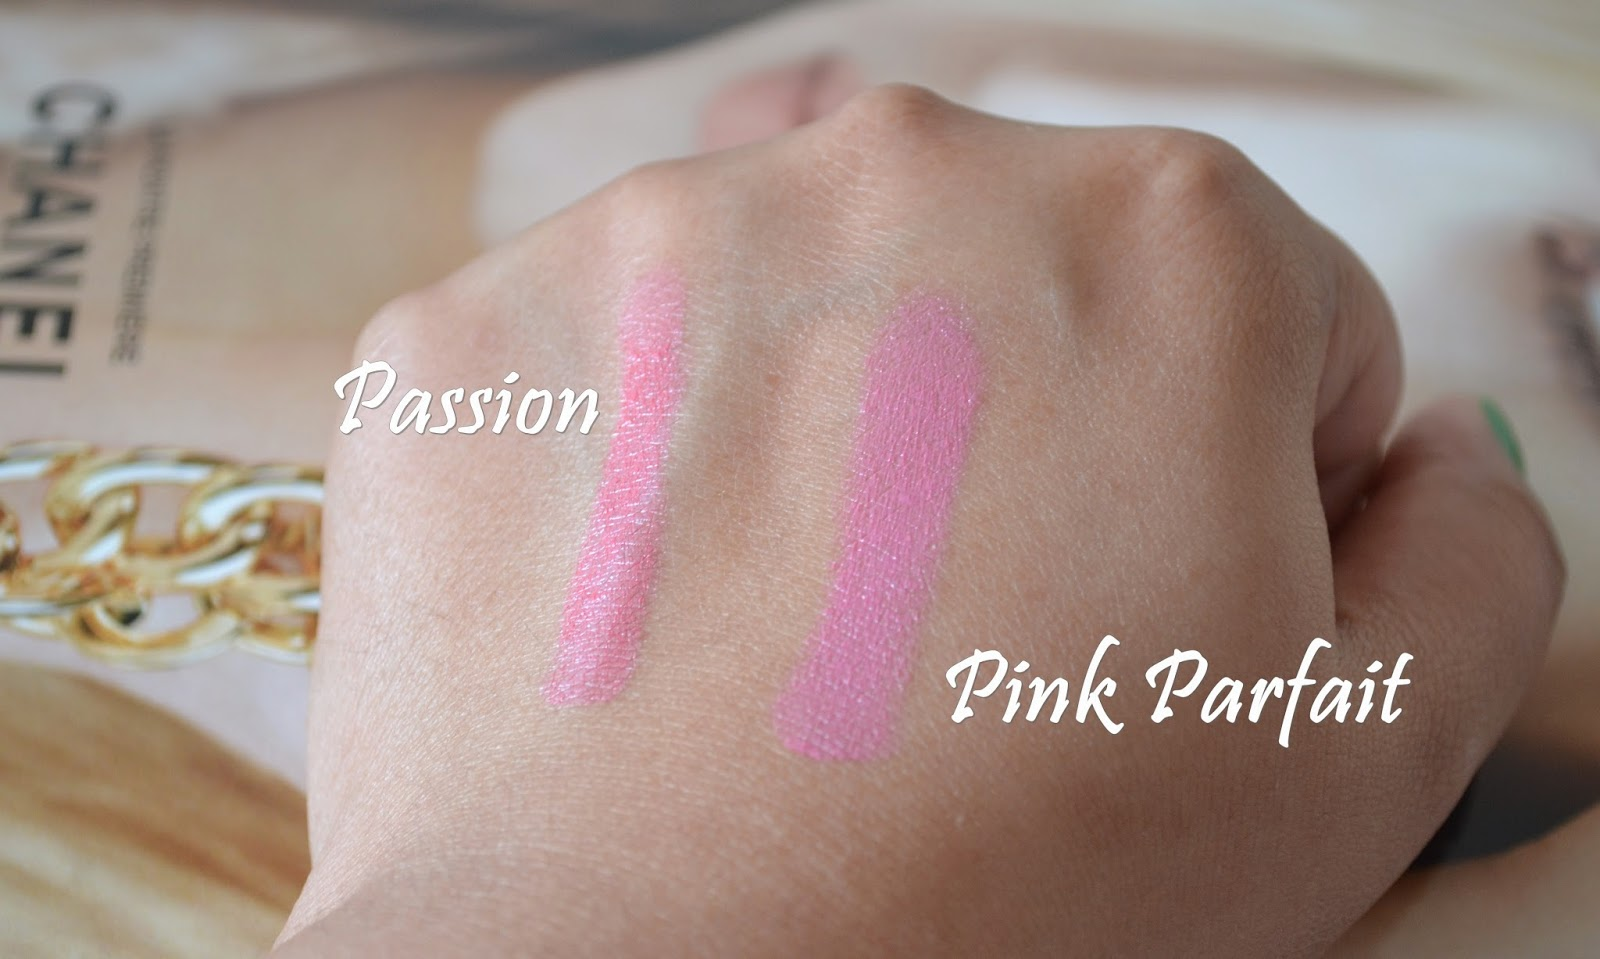 GOSH Giant Blush in Passion & Pink Parfait Swatch - Aspiring Londoner